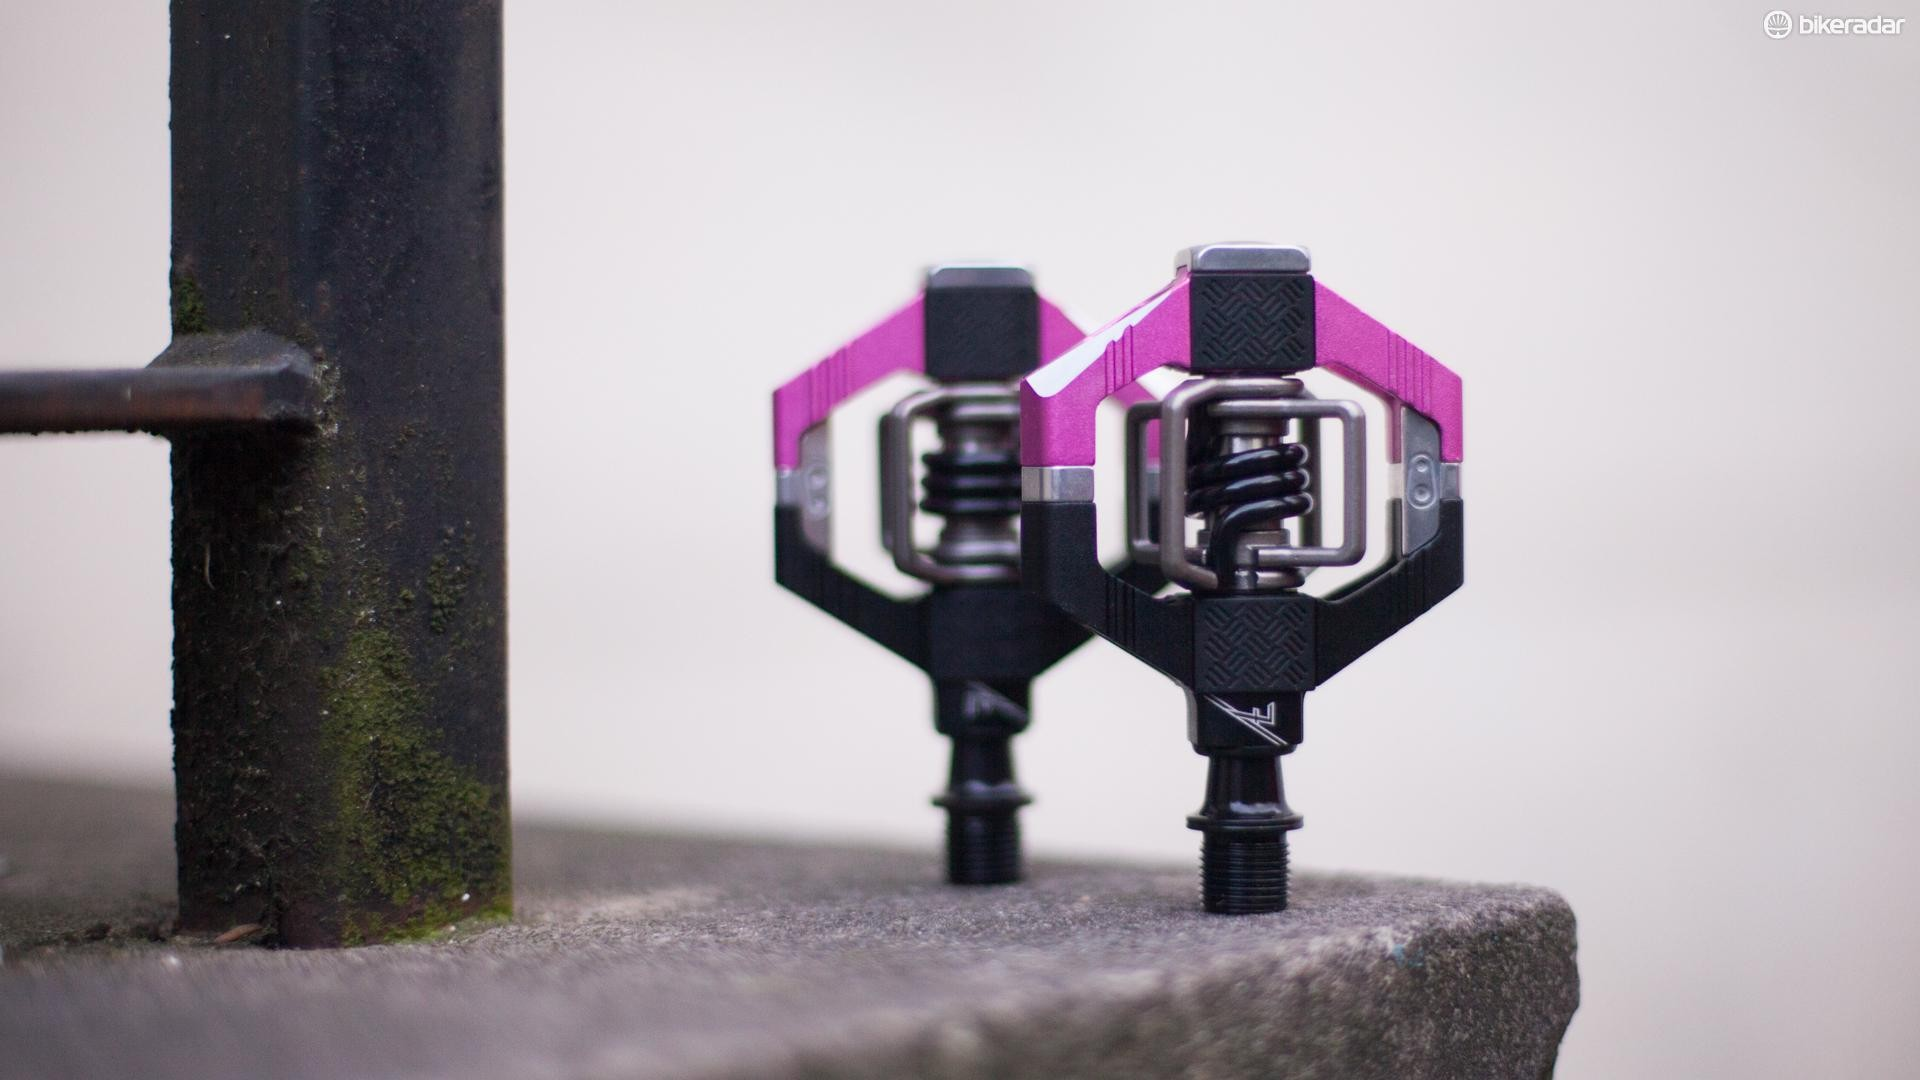 We'll be putting the Candy 7 pedals from Crankbrothers through their paces in the coming weeks